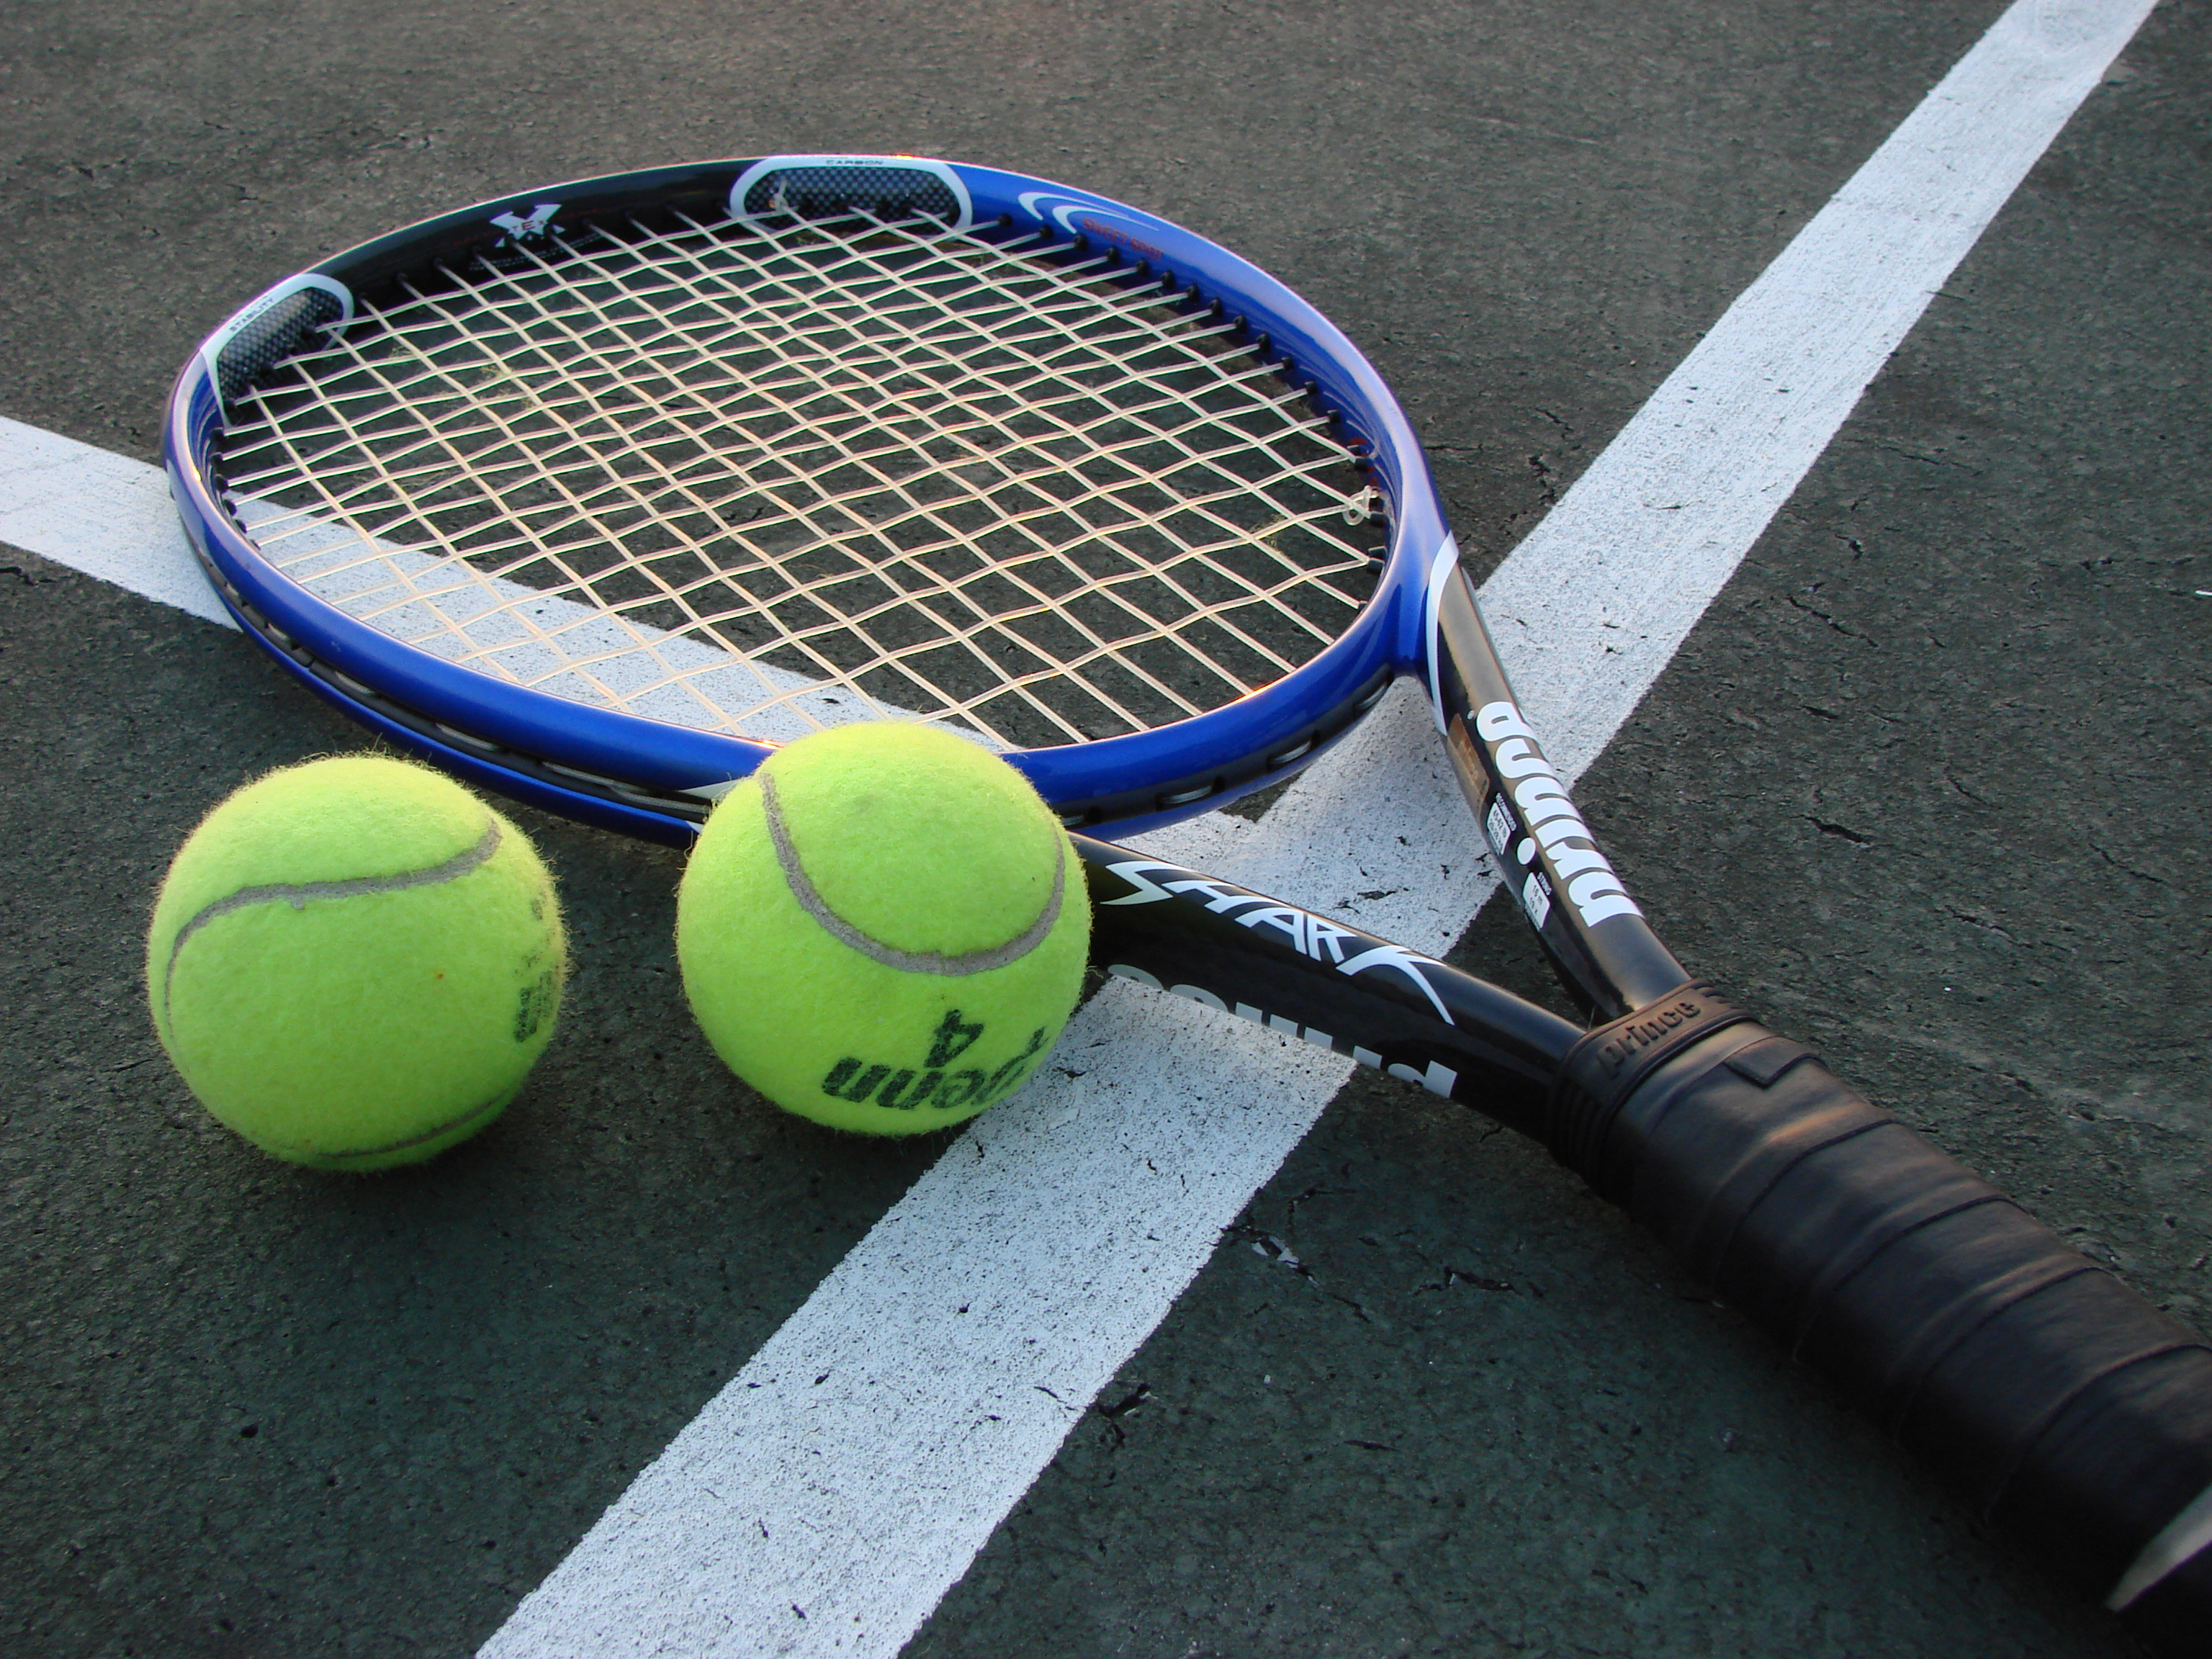 Tennis Hd Wallpaper Background Image 3072x2304 Id 668779 Wallpaper Abyss